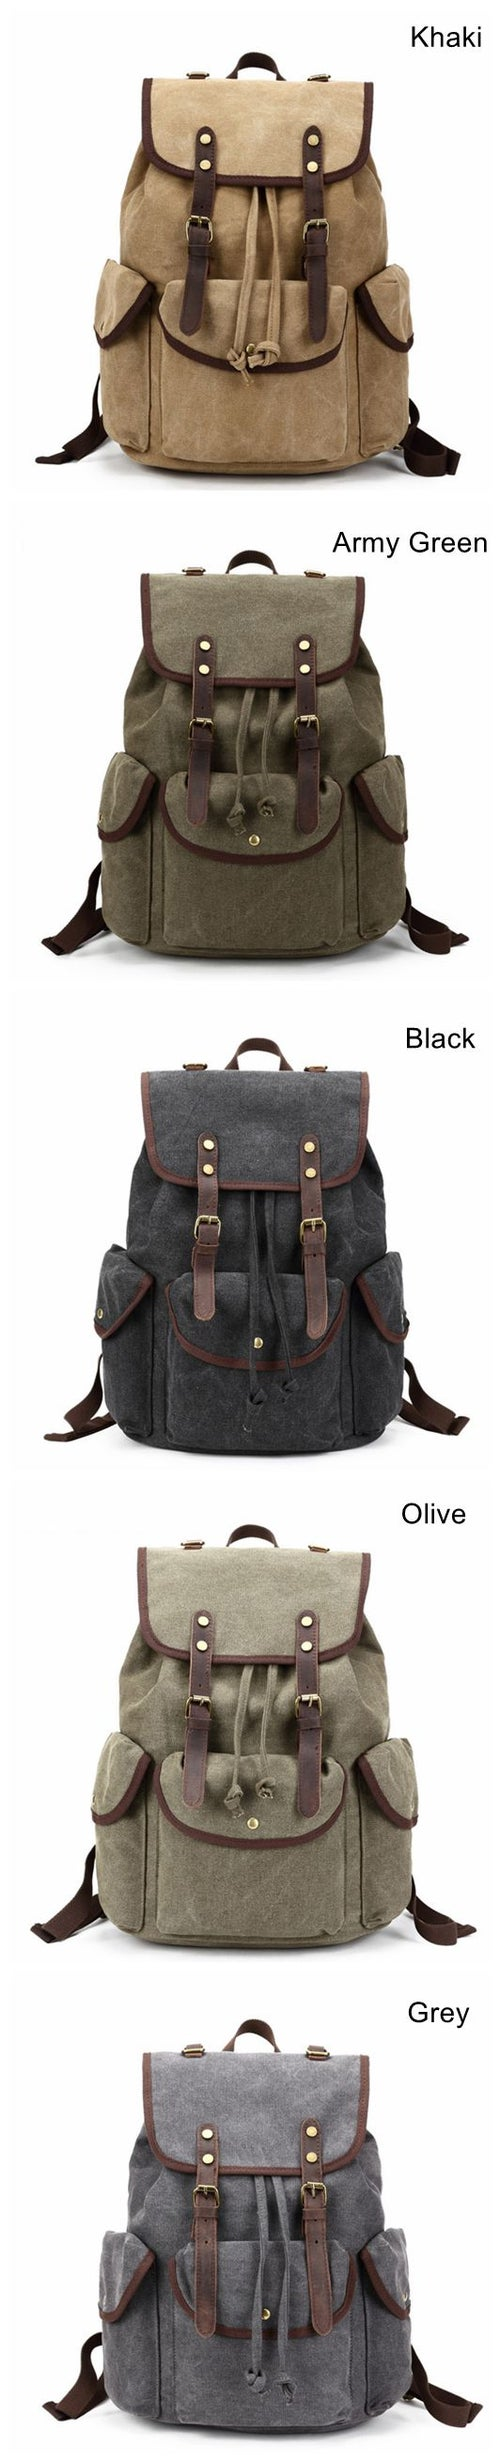 Image of Canvas with Leather Trim School Backpack, Rucksack, Travel Backpack FB06